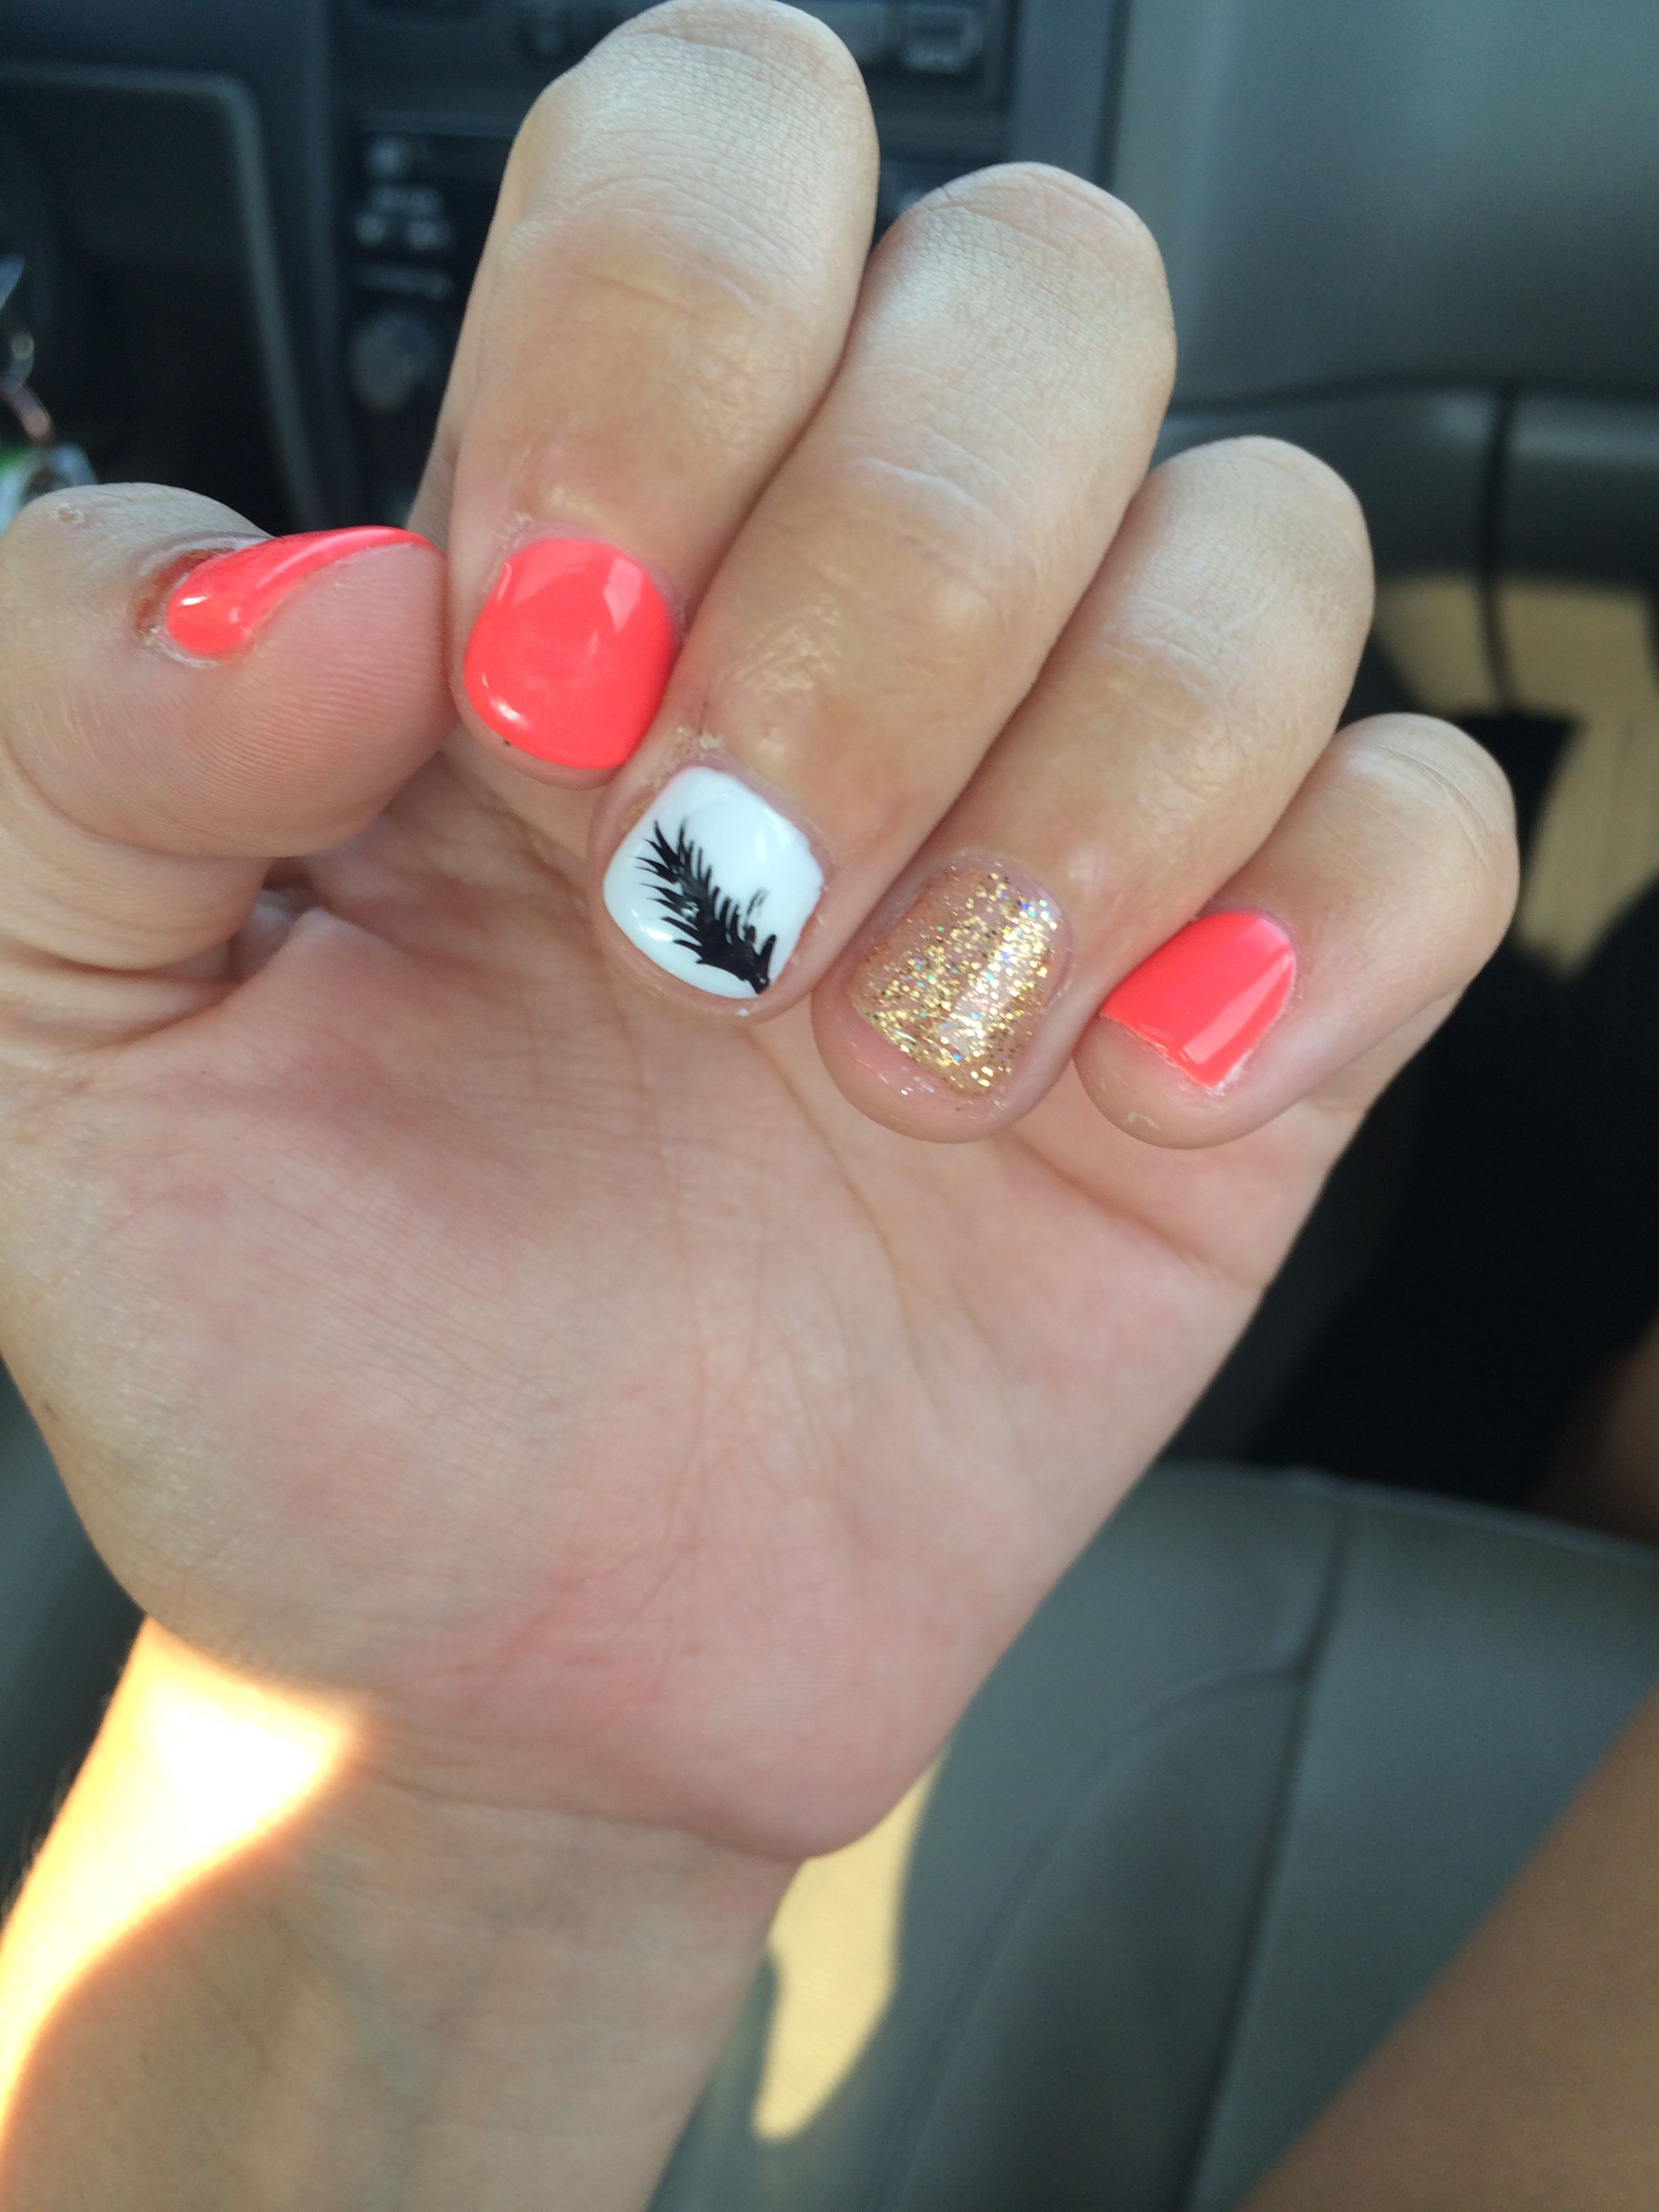 #nails #feather